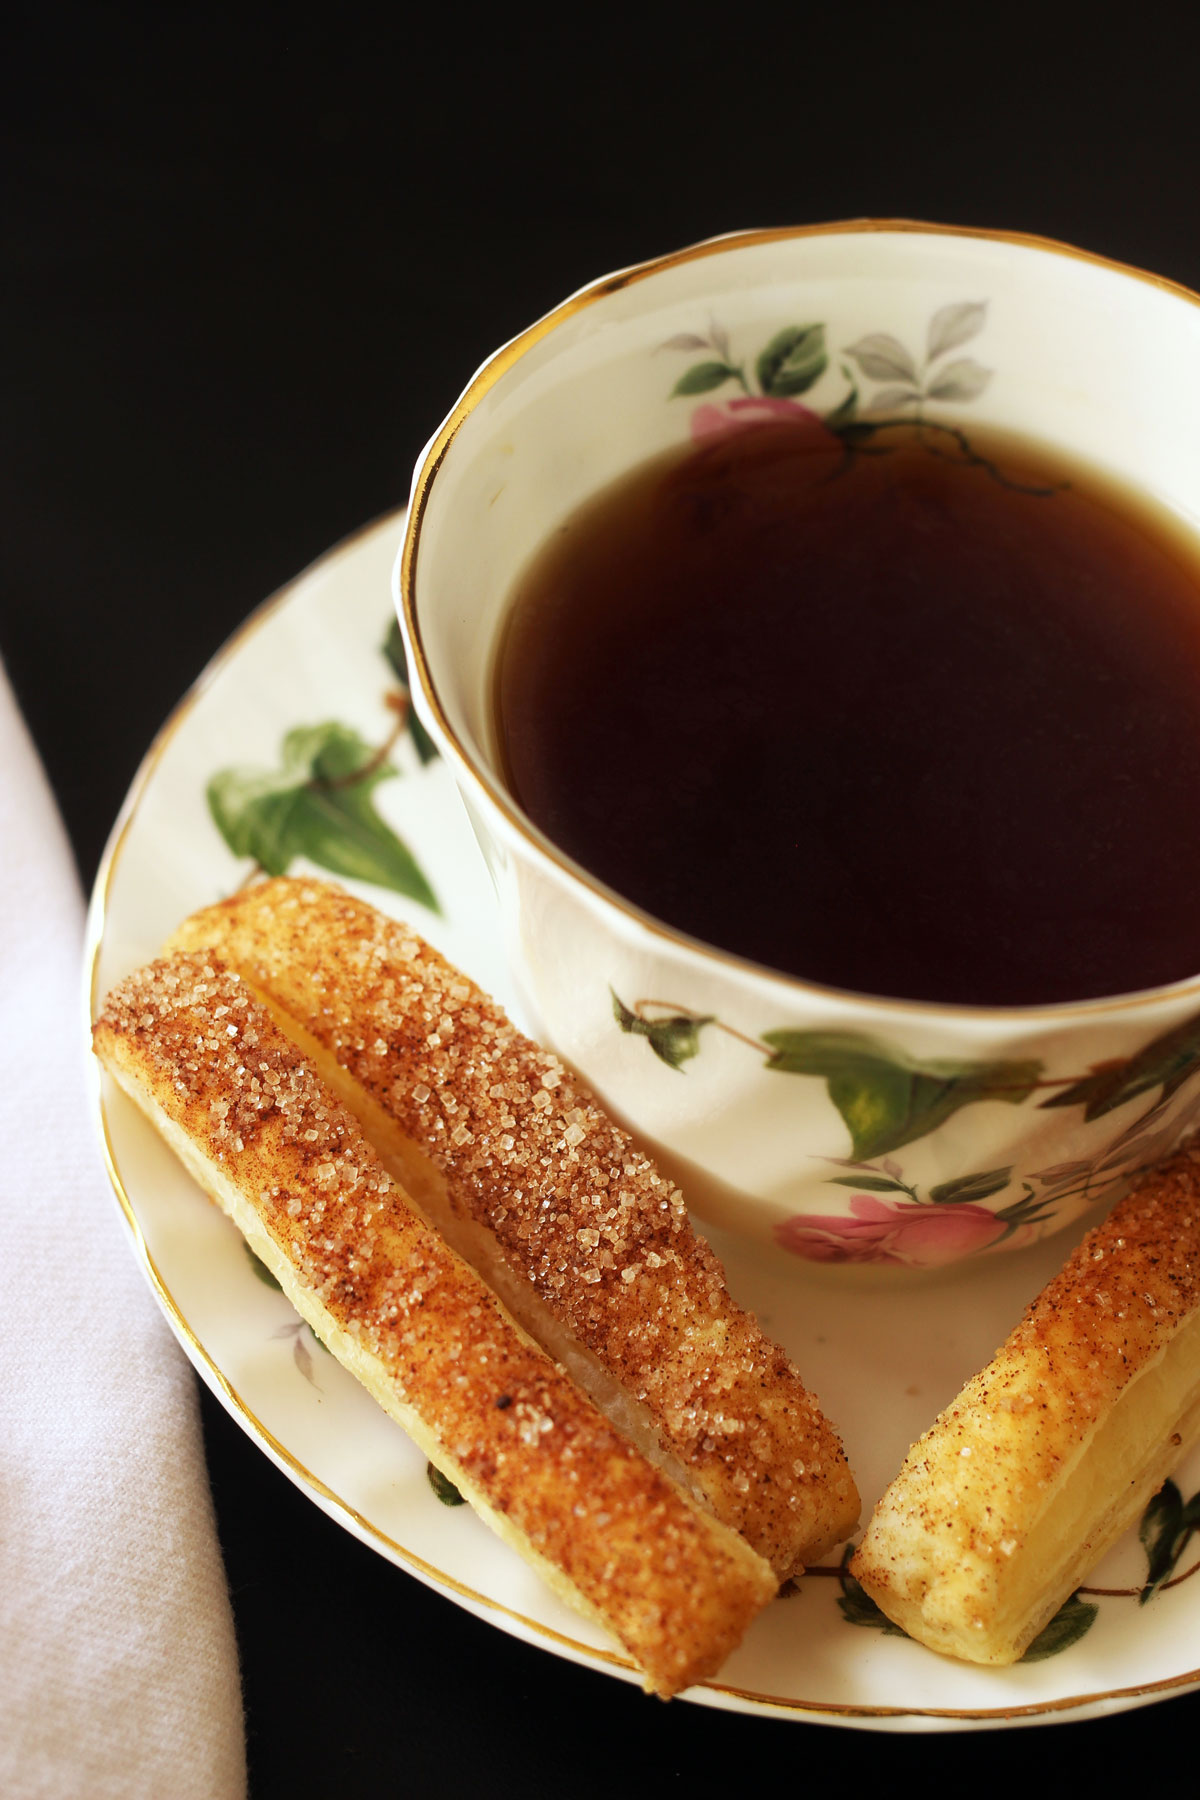 puffs on saucer with tea cup and napkin